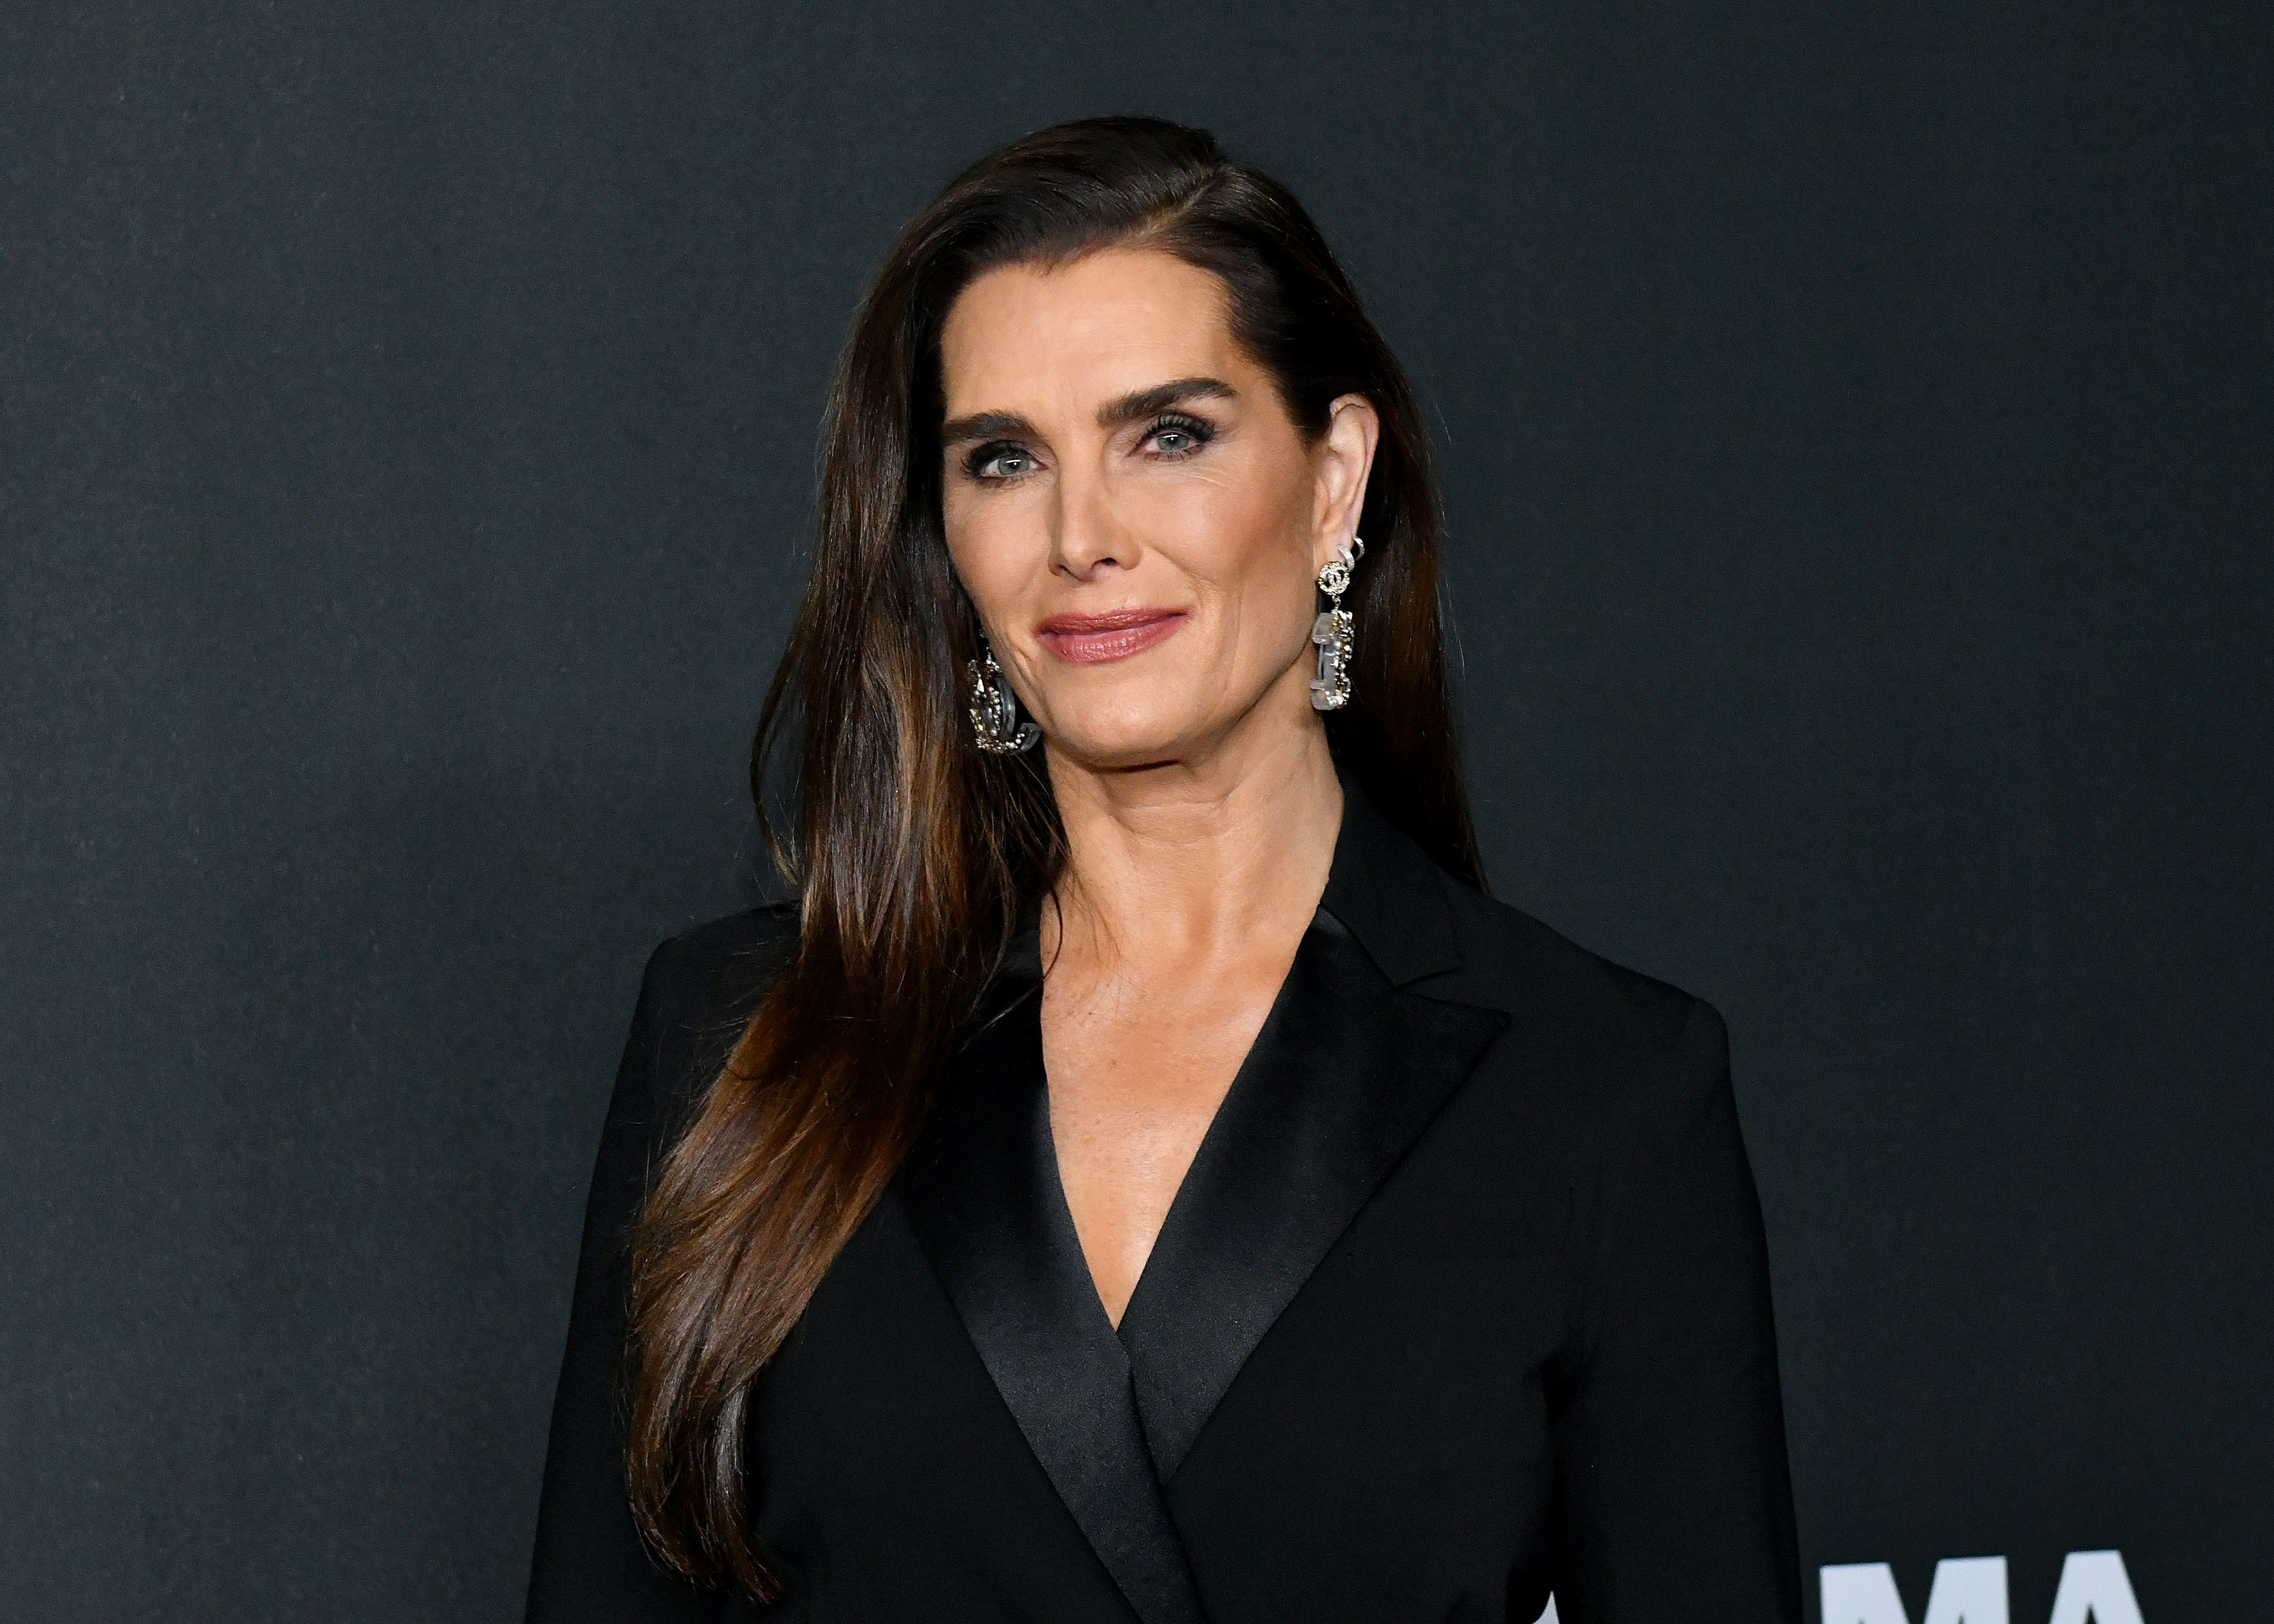 Brooke Shields at MoMA's Twelfth Annual Film Benefit Presented By CHANEL on November 12, 2019 | Photo: Getty Images